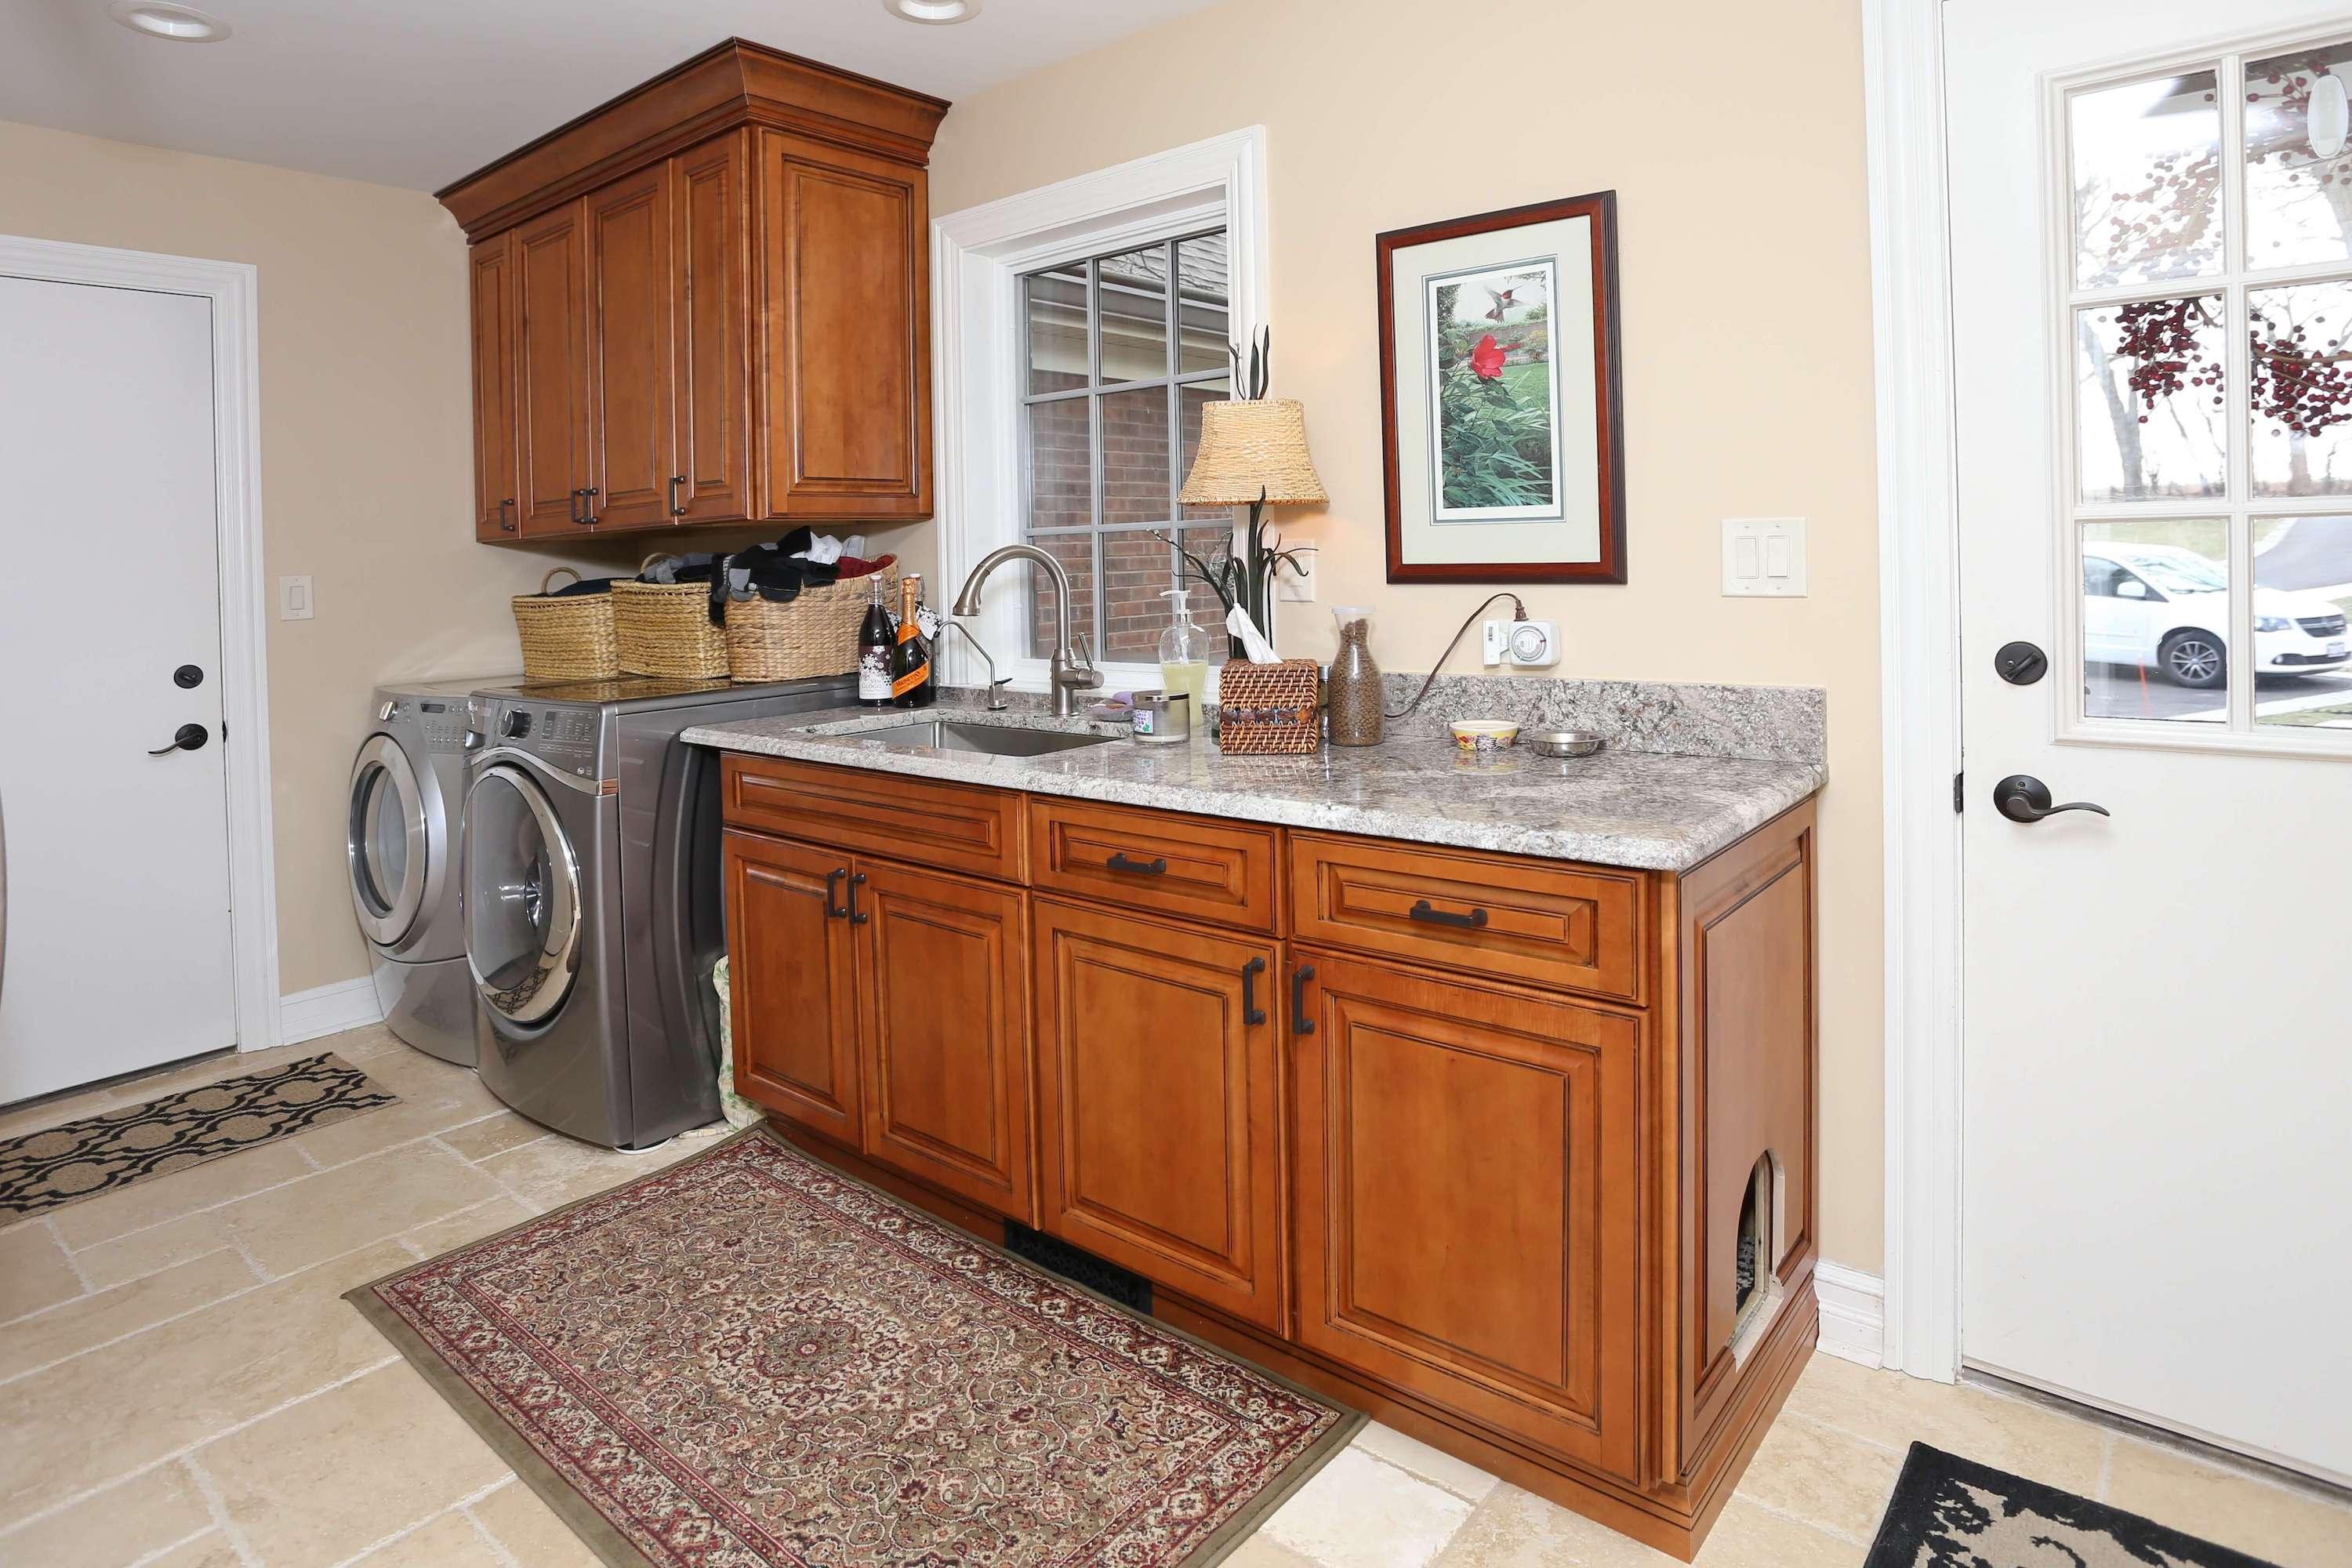 Before and After Stunning Kitchen Remodel in Mundelein